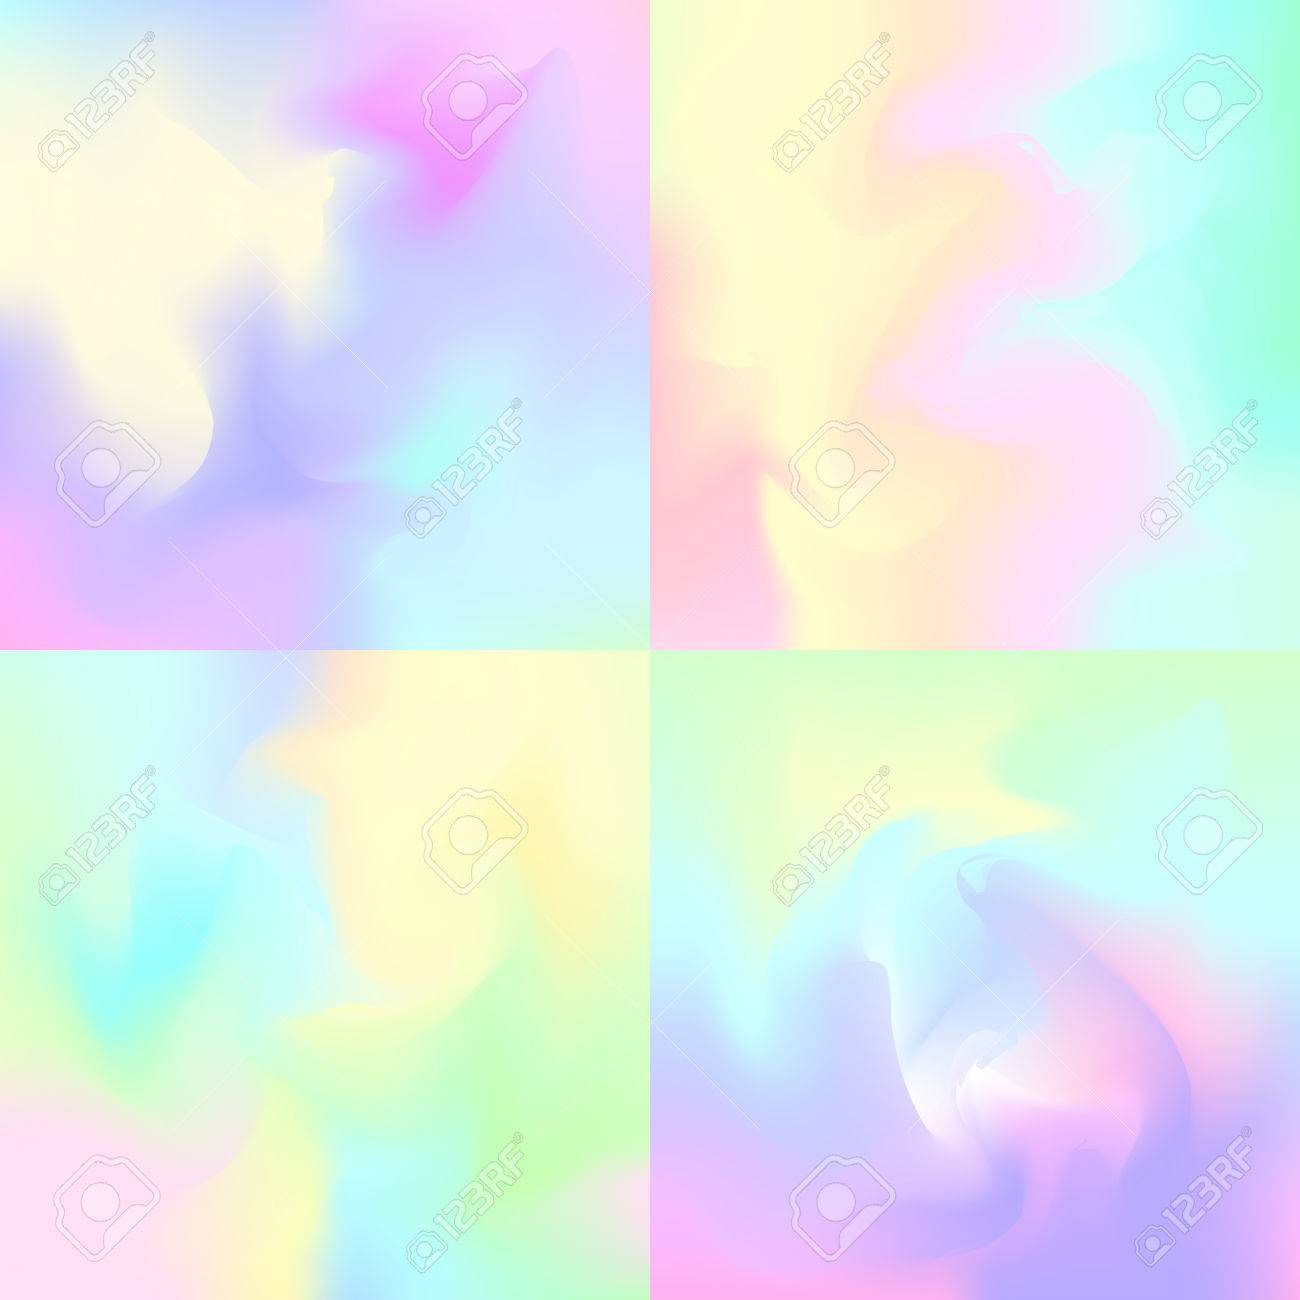 Set Of 4 Pastel Rainbow Backgrounds Hologram Inspired Abstract Royalty Free Cliparts Vectors And Stock Illustration Image 67582808